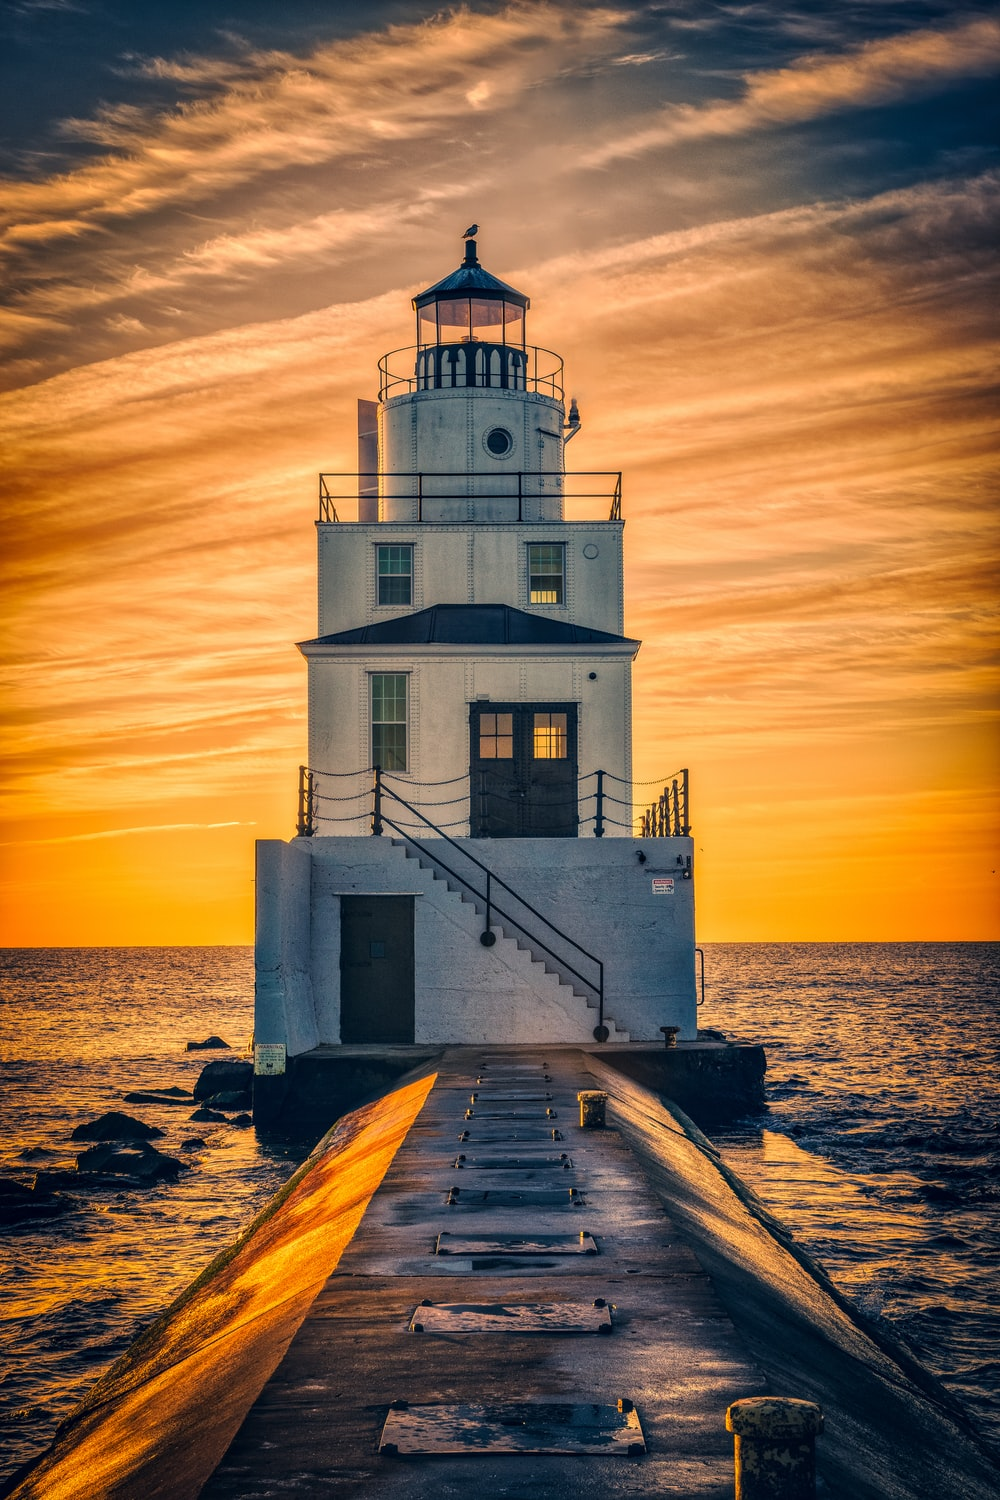 lighthouse surrounded by body of water during golden hour